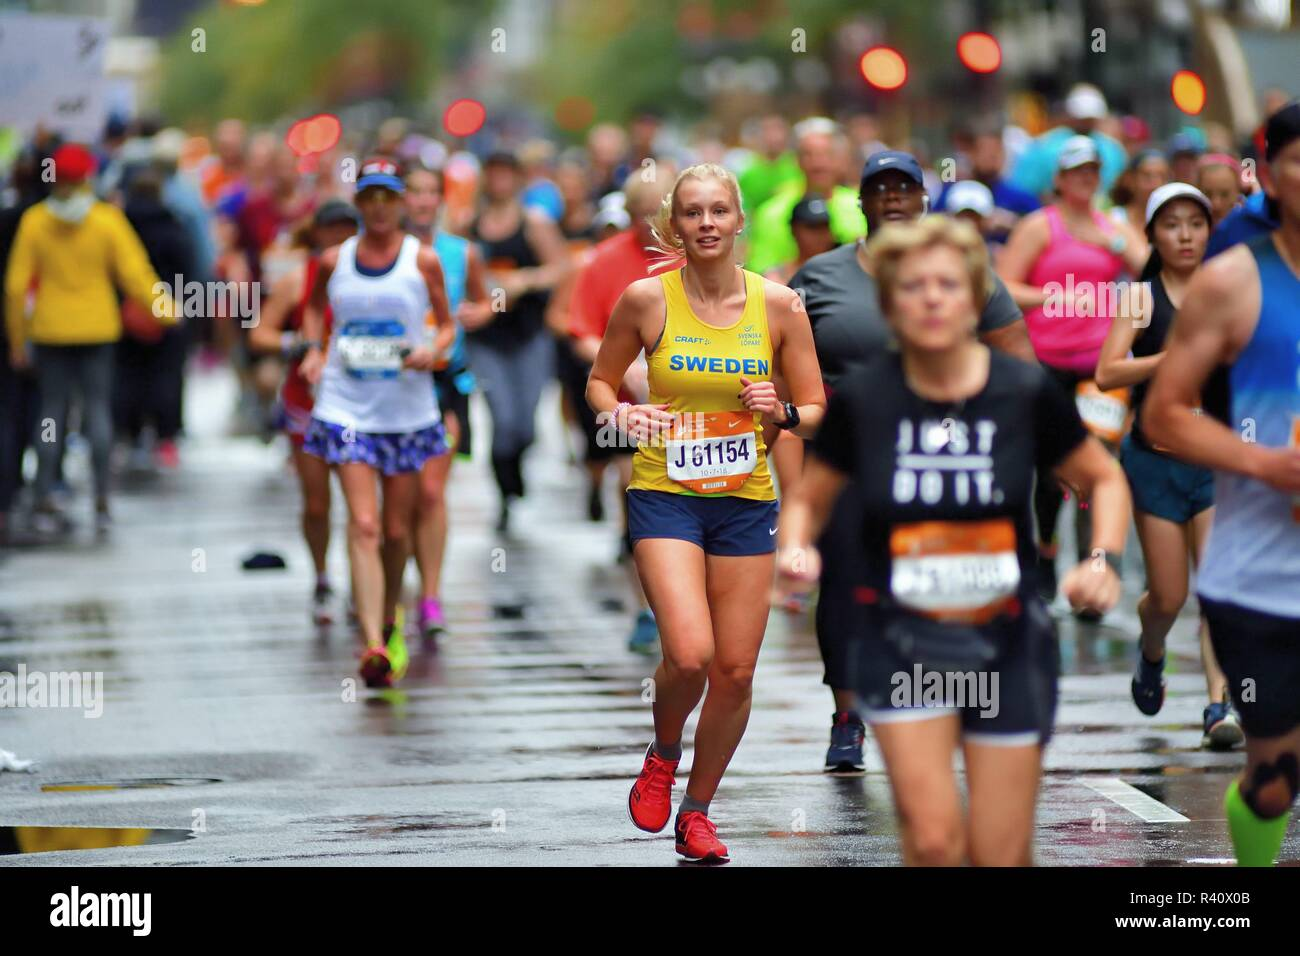 Chicago, Illinois, USA. A runner from Sweden, Erika Kaspersson, isolated within a sea of runners at the 2018 Chicago Marathon. - Stock Image